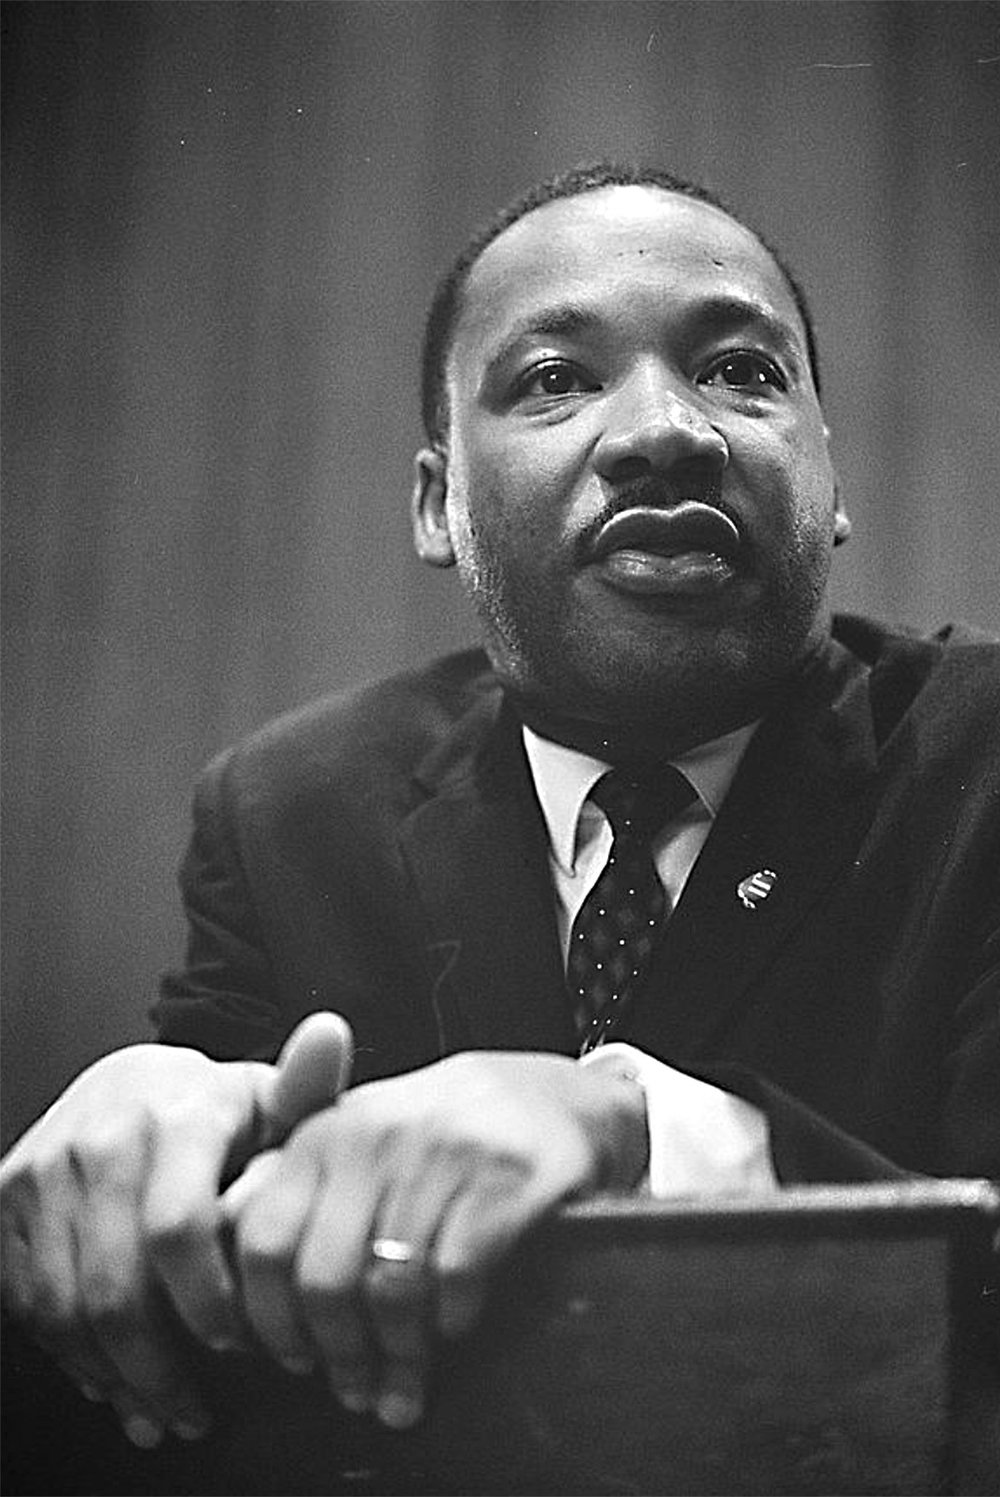 Copy of Martin Luther King, Jr.